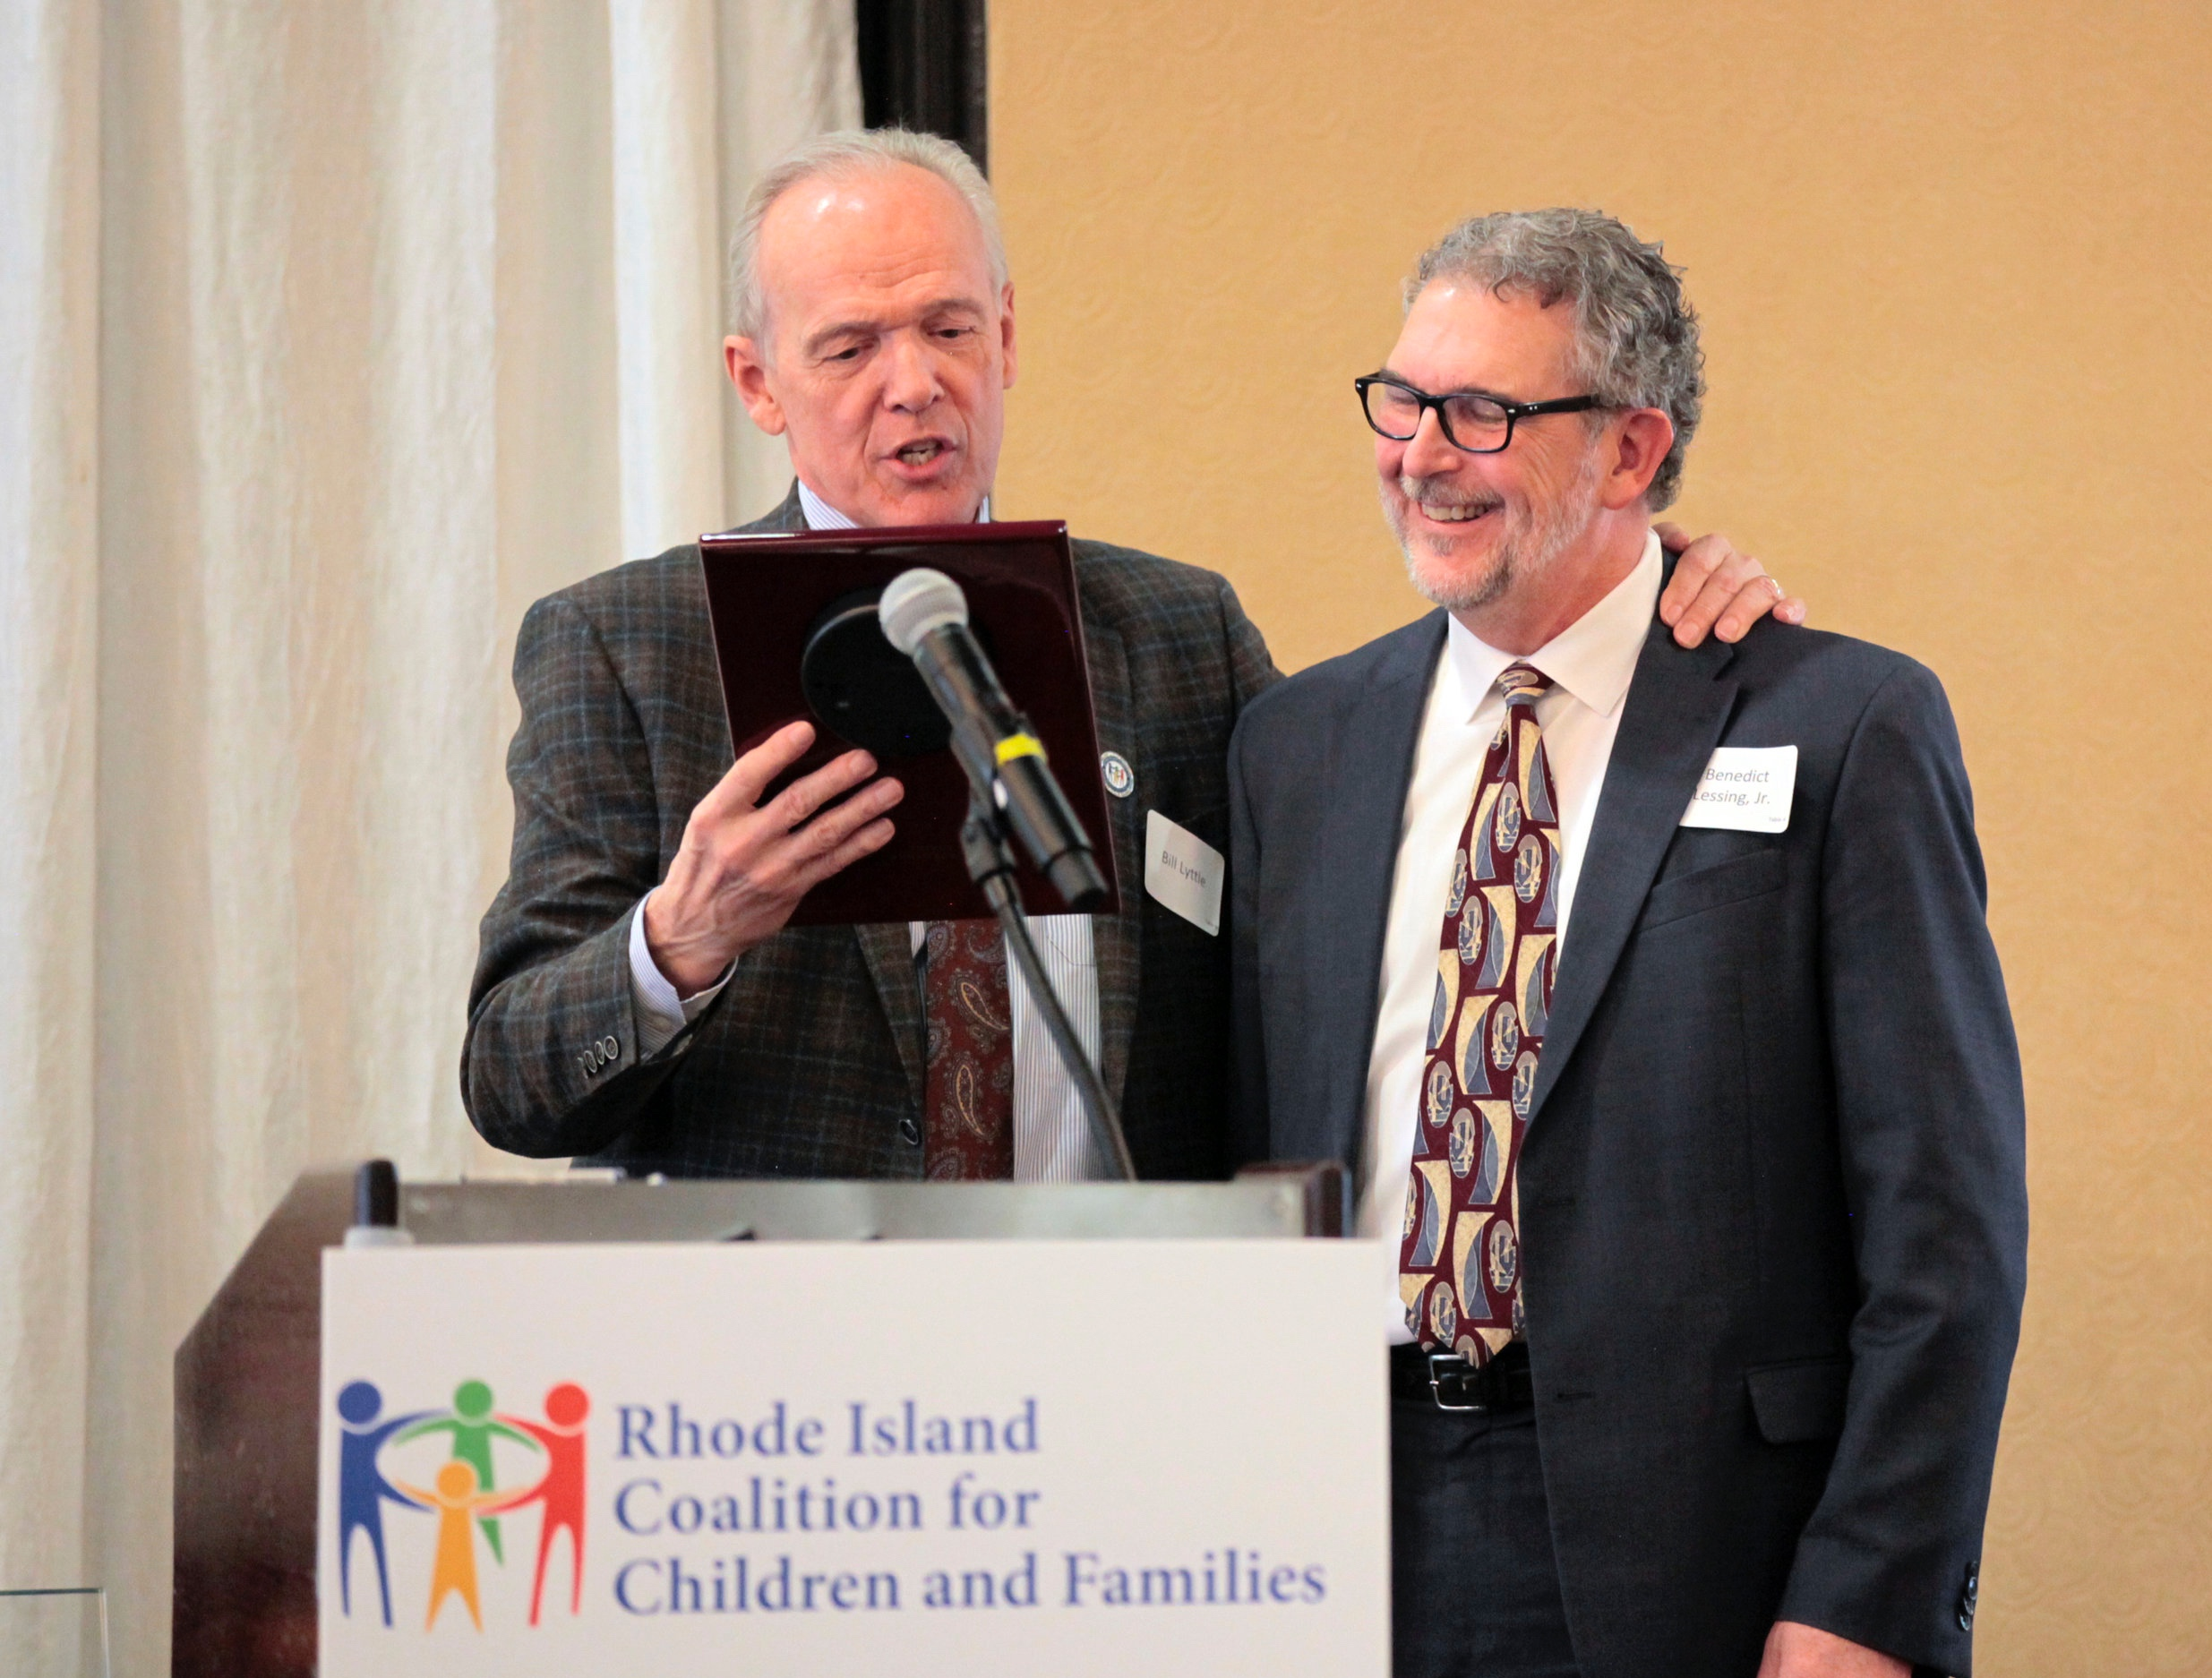 Benedict F. Lessing, Jr., RICCF Founding Chairman,  accepting the award for Coalition Vision from William Lyttle, III, RICCF Treasurer.